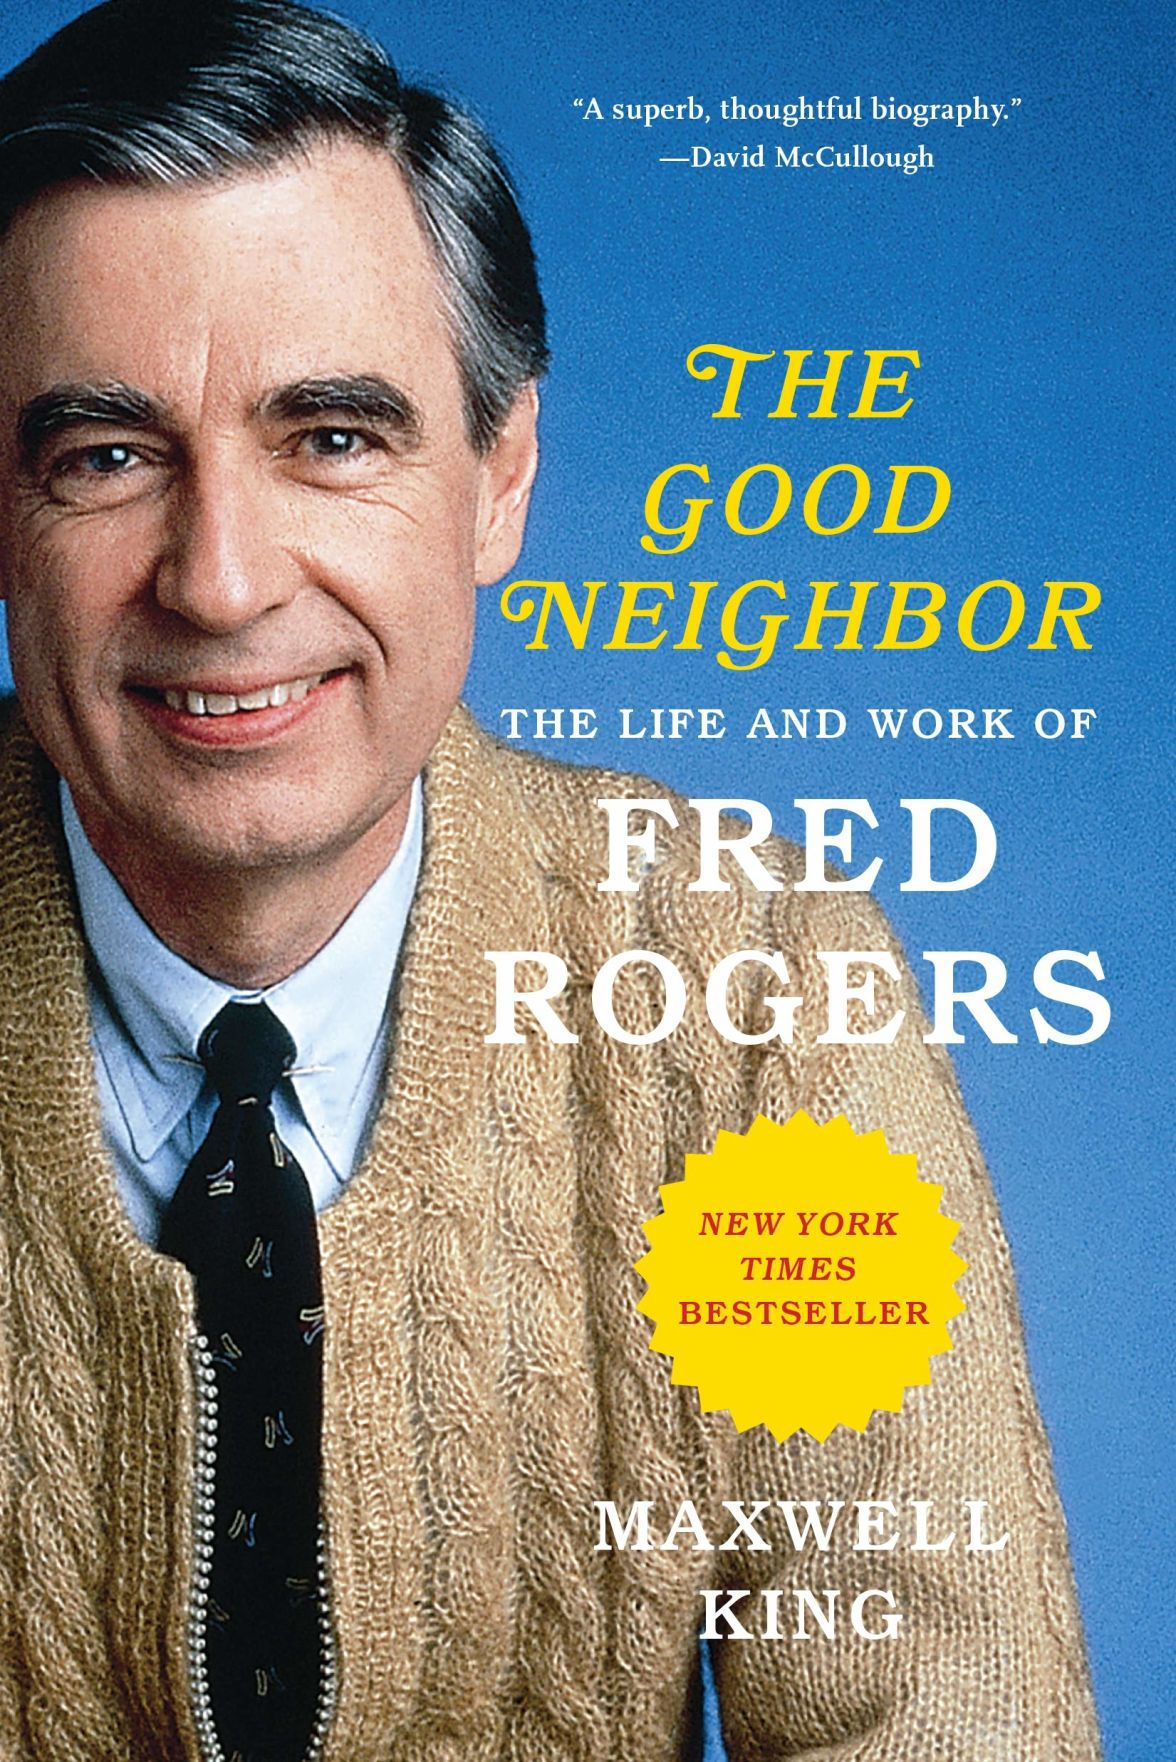 Book Scene It S A Beautiful Day To Read About Mr Rogers Literature Yakimaherald Com